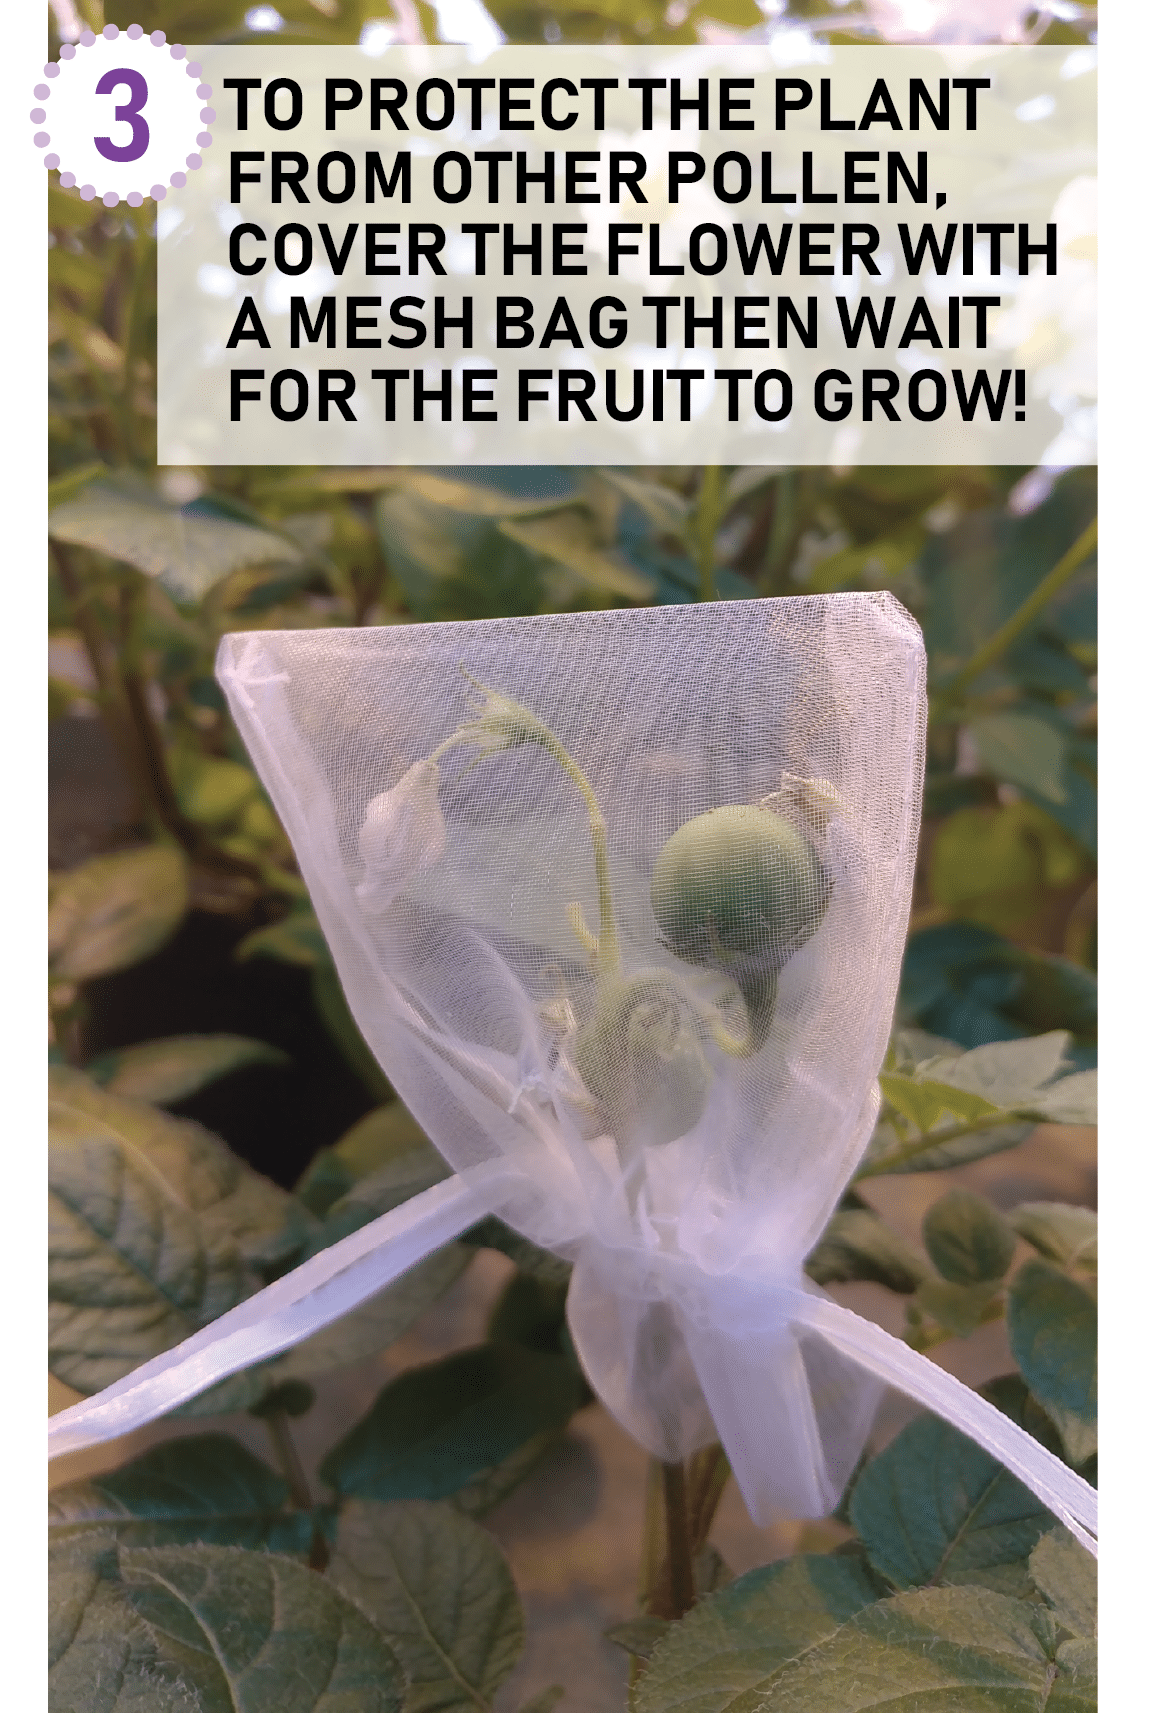 mesh bag protects plant